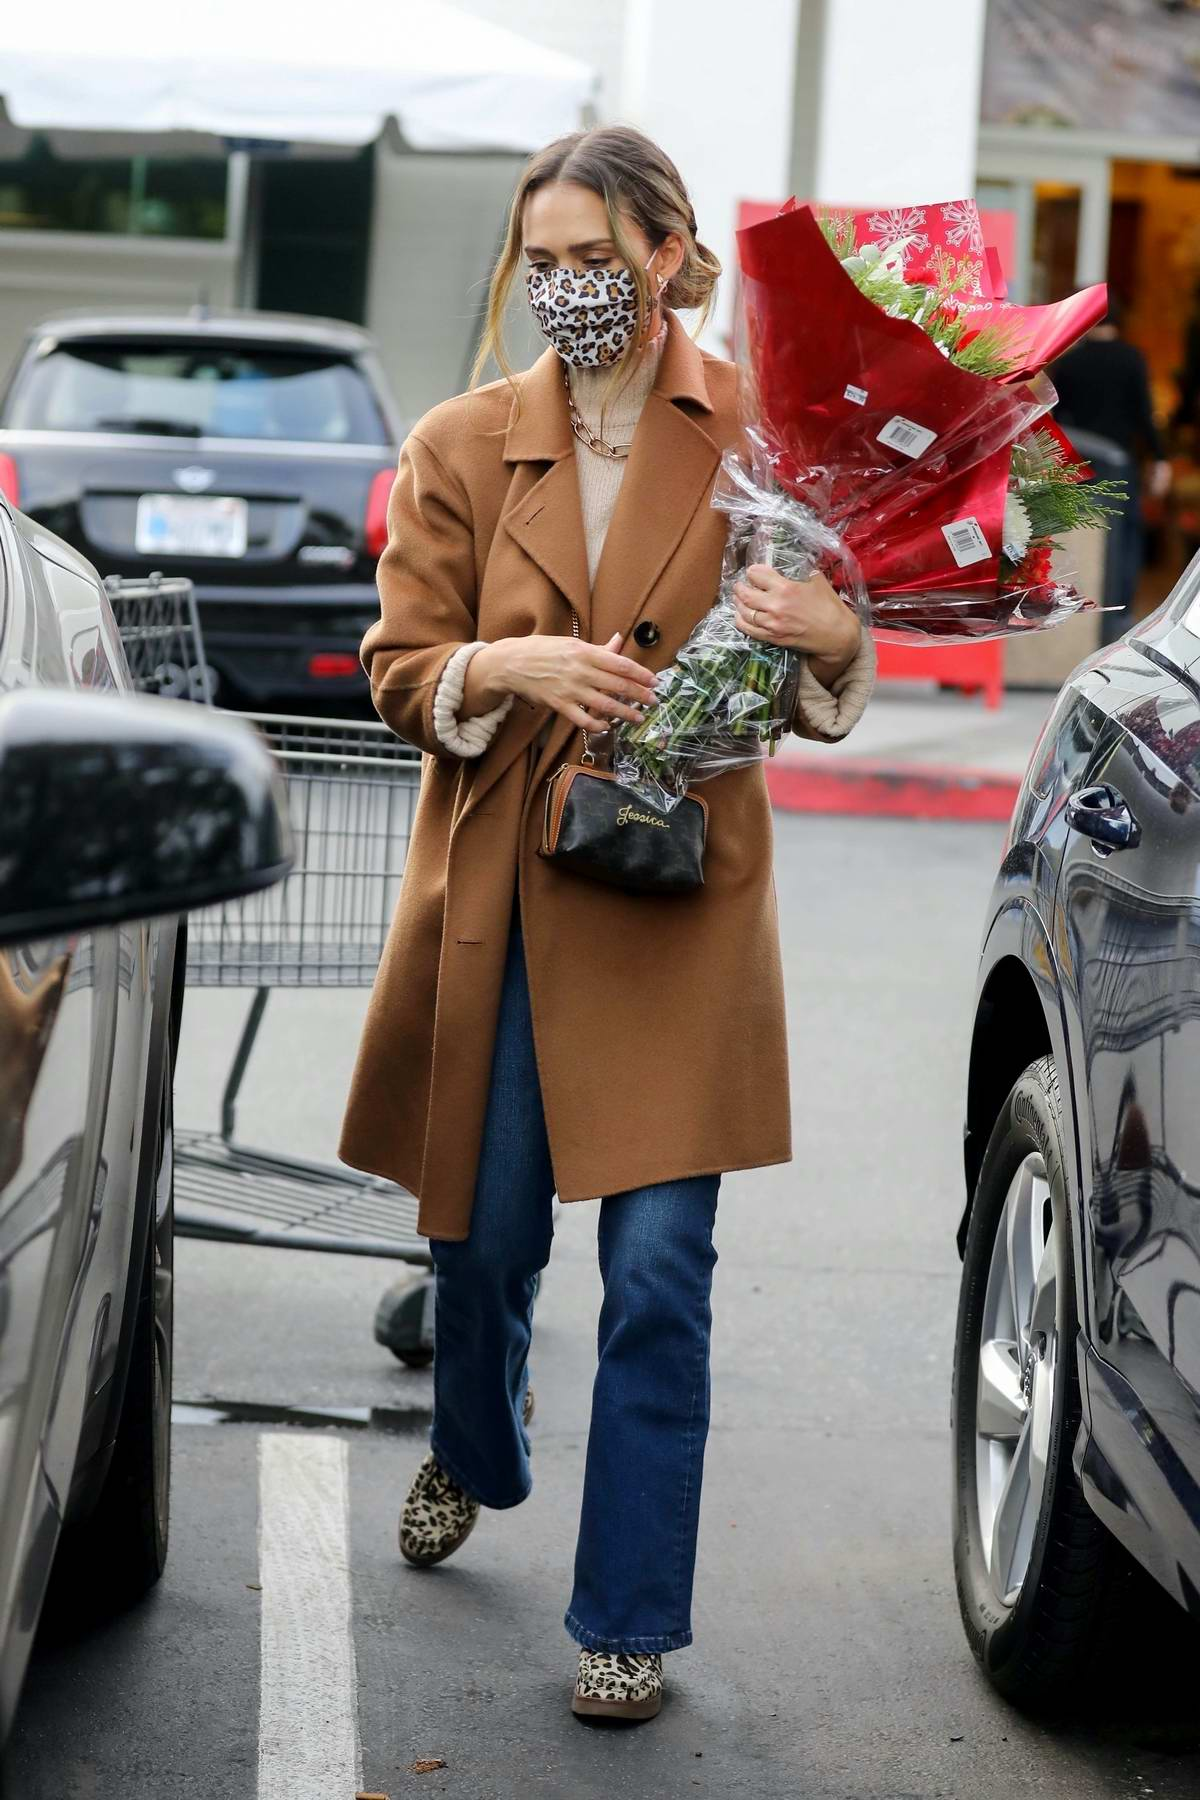 Jessica Alba makes a stop for some groceries and flowers at Bristol Farms in Beverly Hills, California